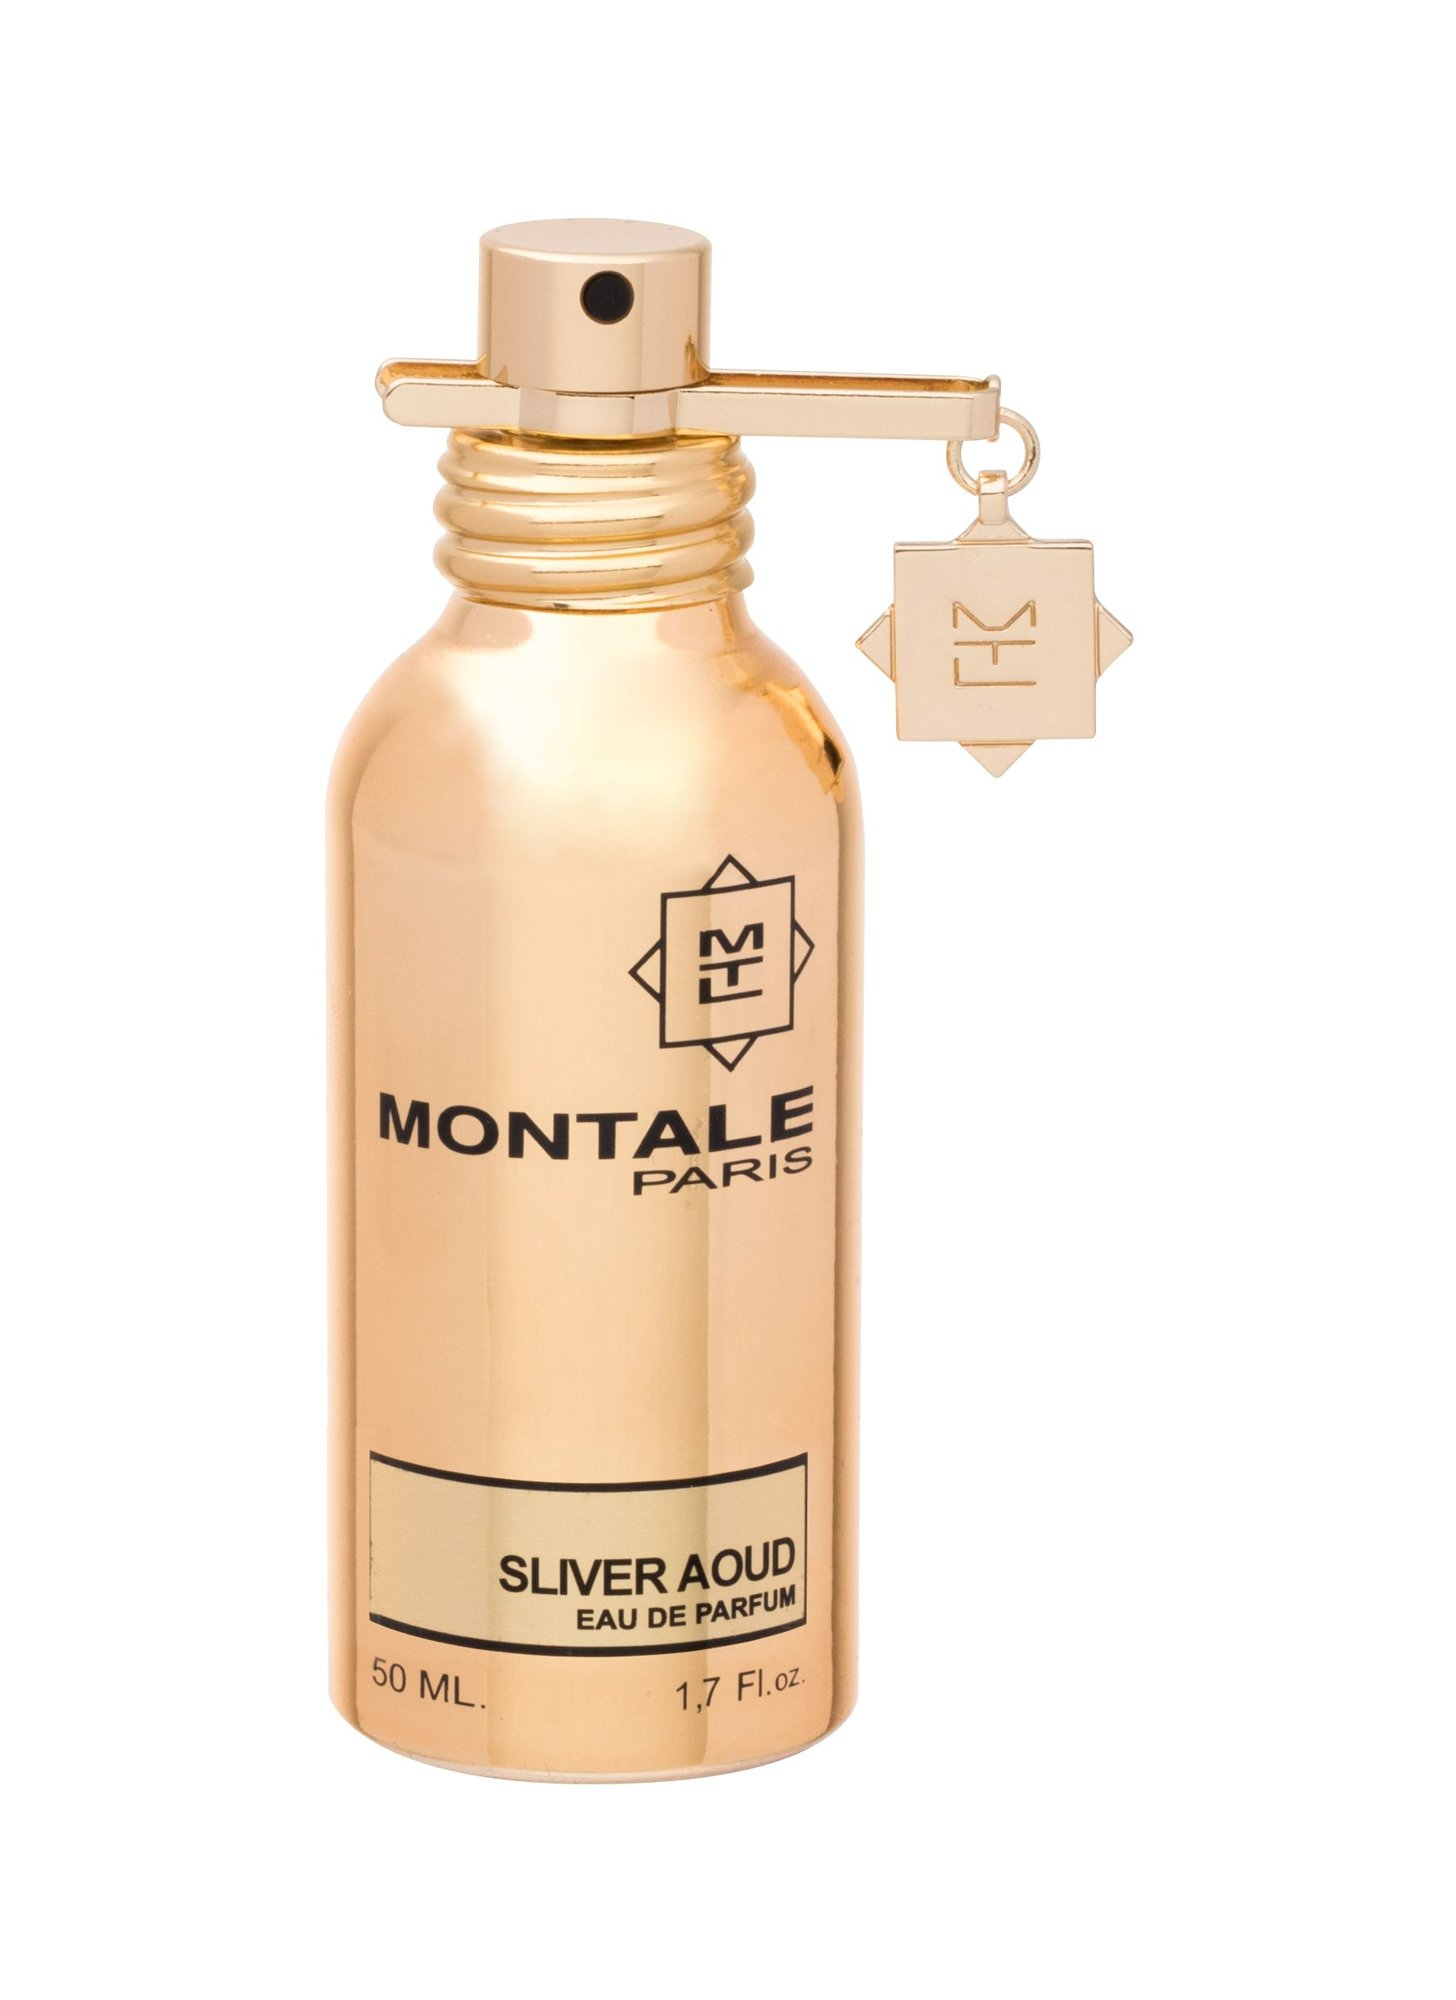 Montale Paris Sliver Aoud EDP 50ml